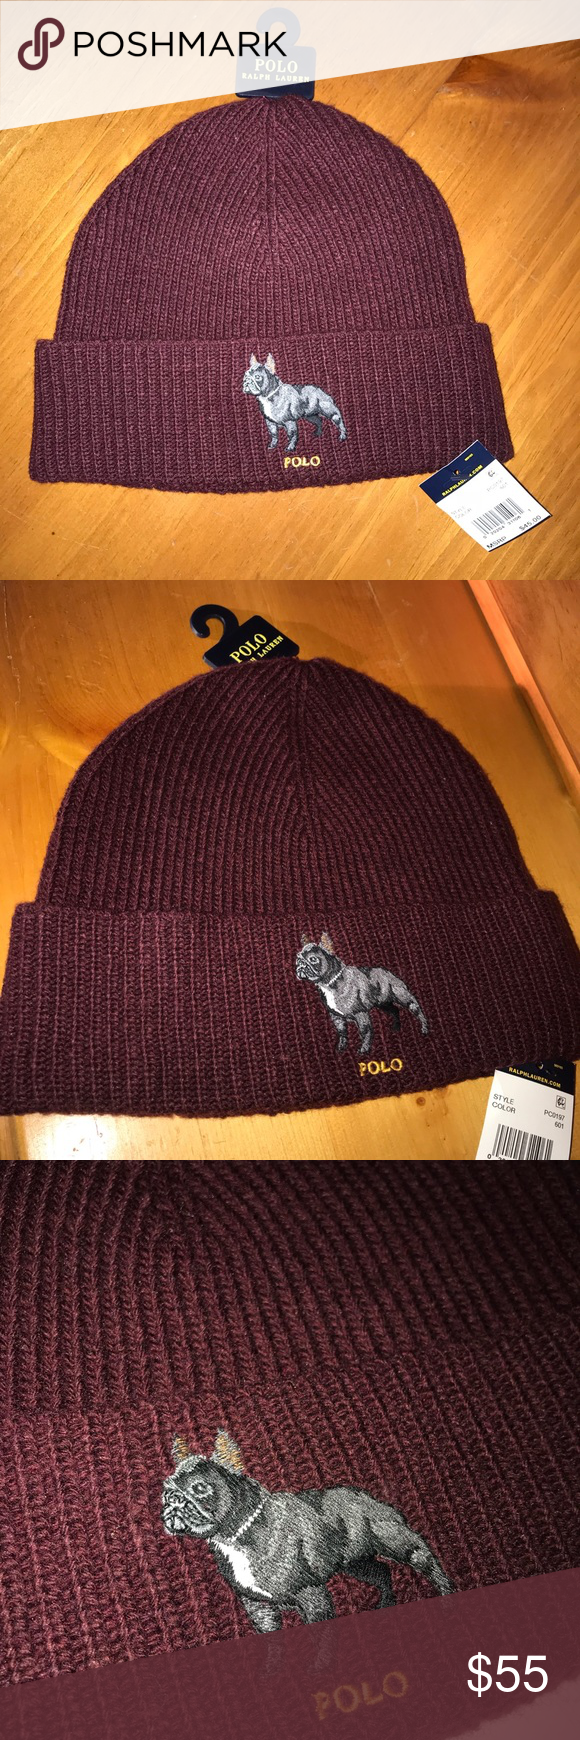 Polo Ralph Lauren French Bulldog Beanie Maroon 100% Authentic Ralph Lauren  Product 🍷Wine Red Colorway🍷 Brand New with Tags Polo by Ralph Lauren ... c66ce4000c0